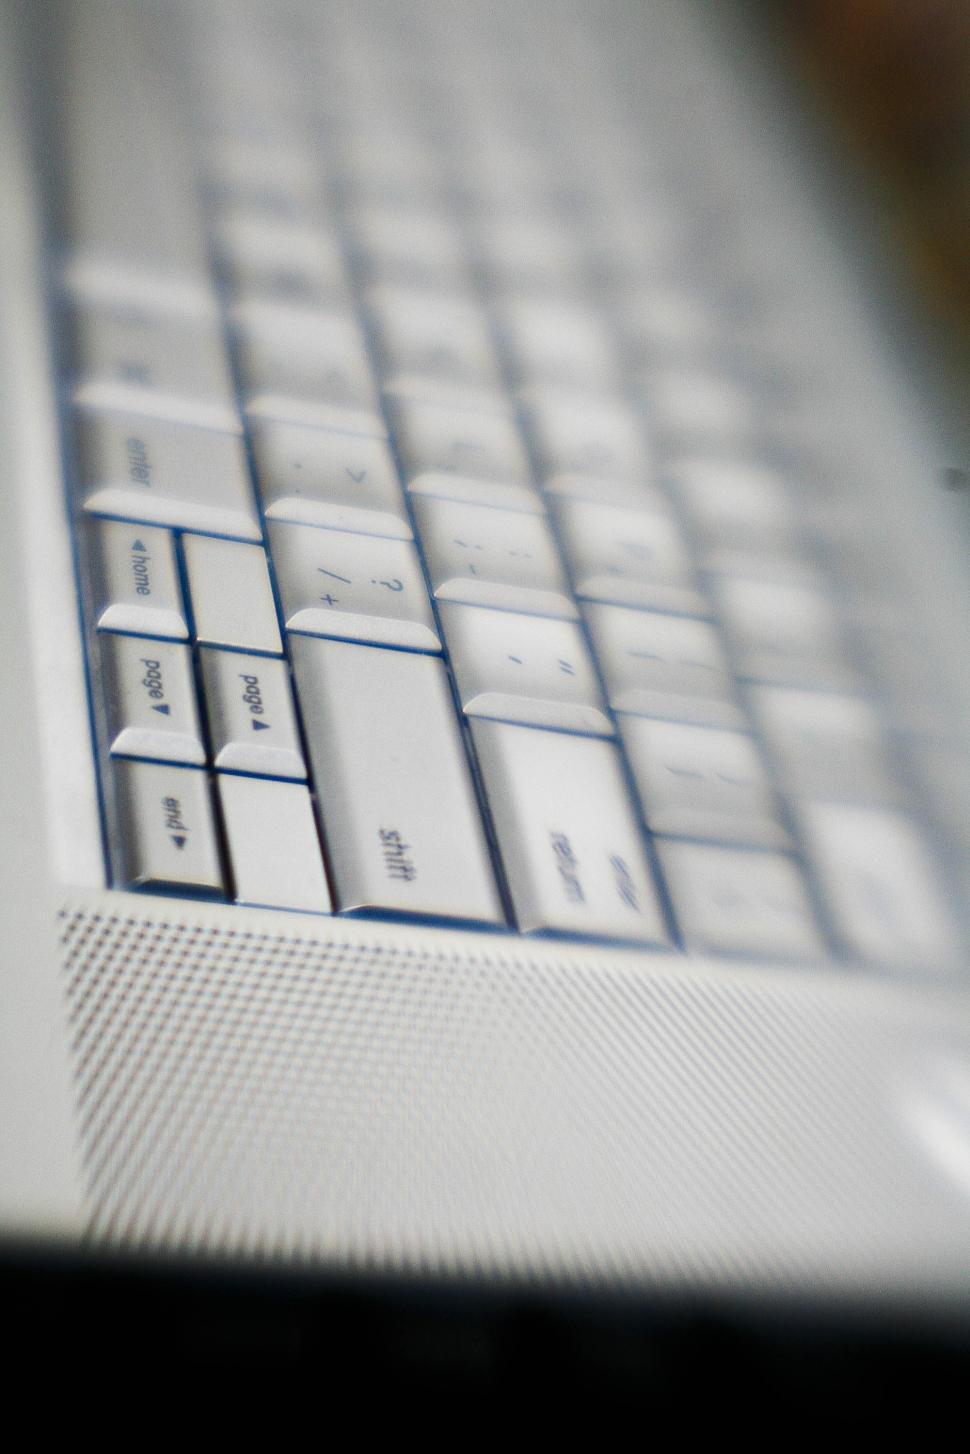 Download Free Stock HD Photo of Cmoputer Keyboard Online